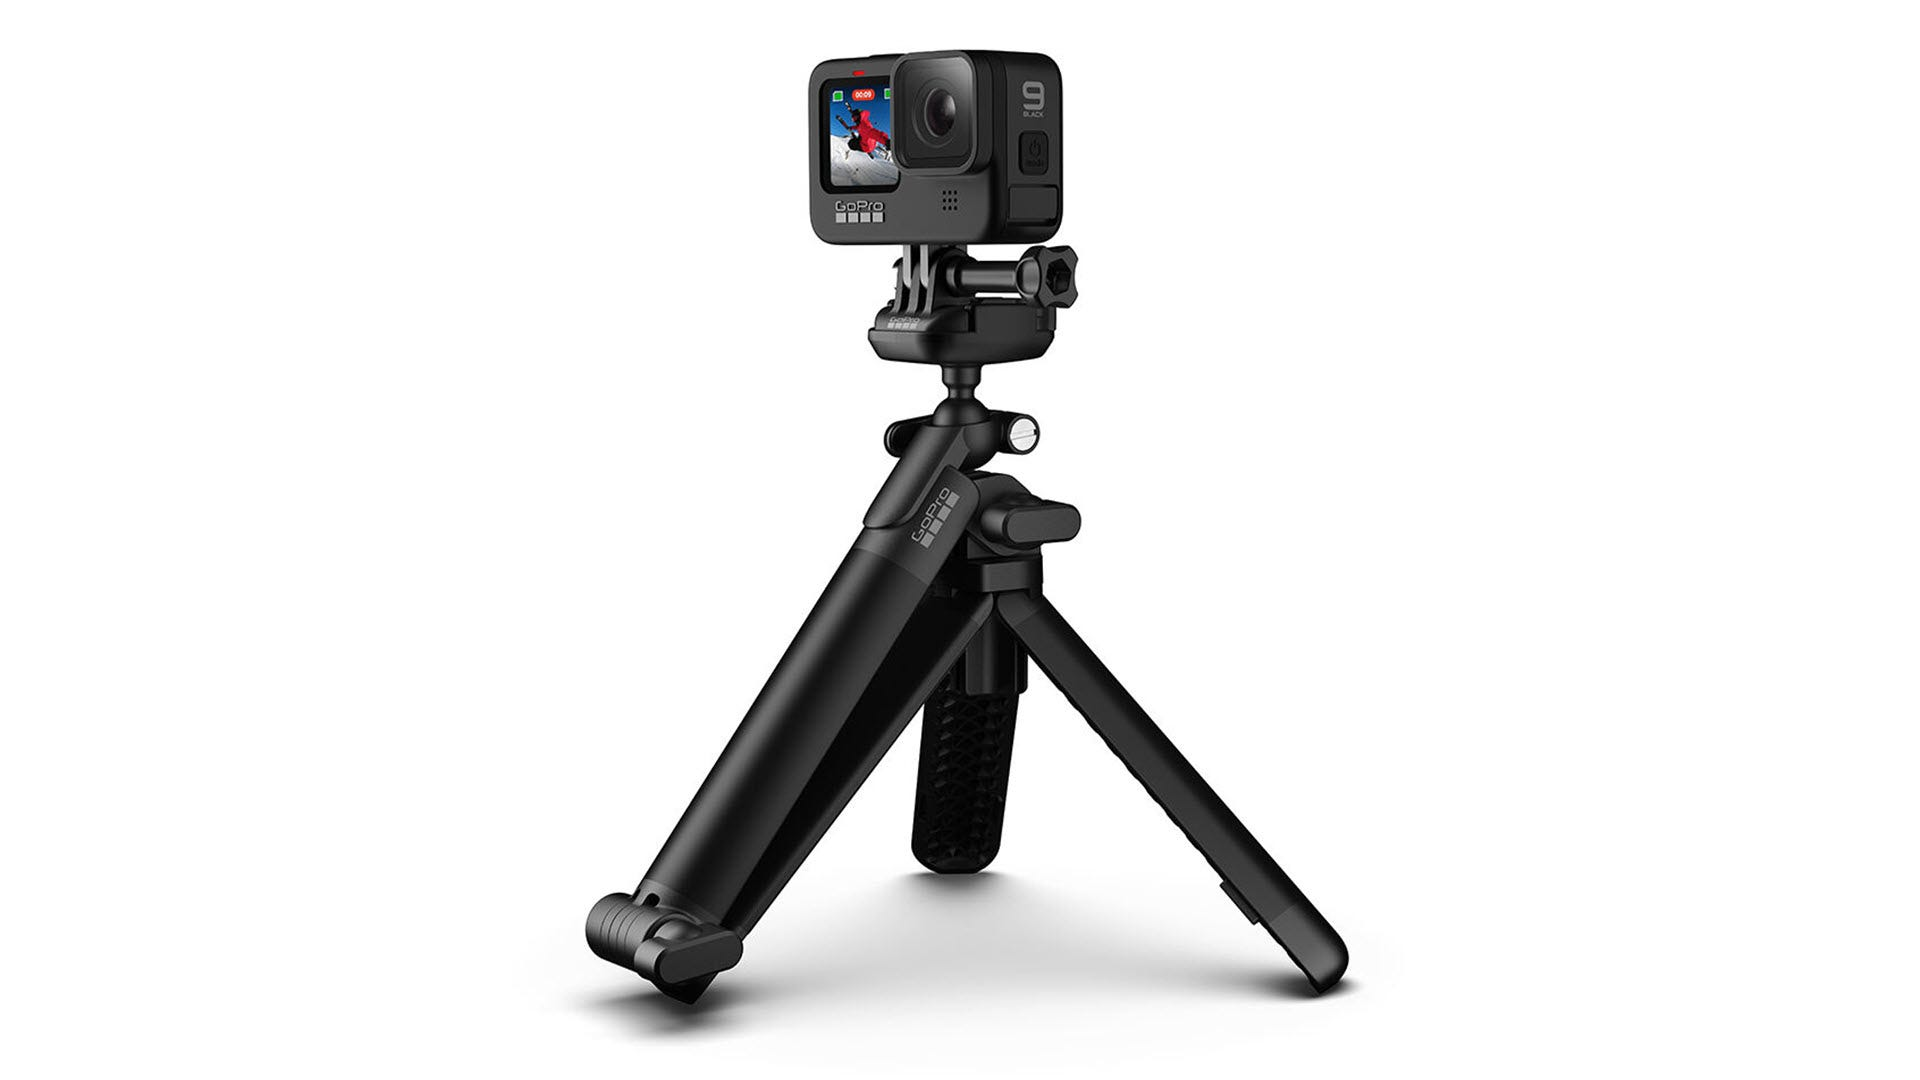 A GoPro on a 3-Way mount in compact tripod mode